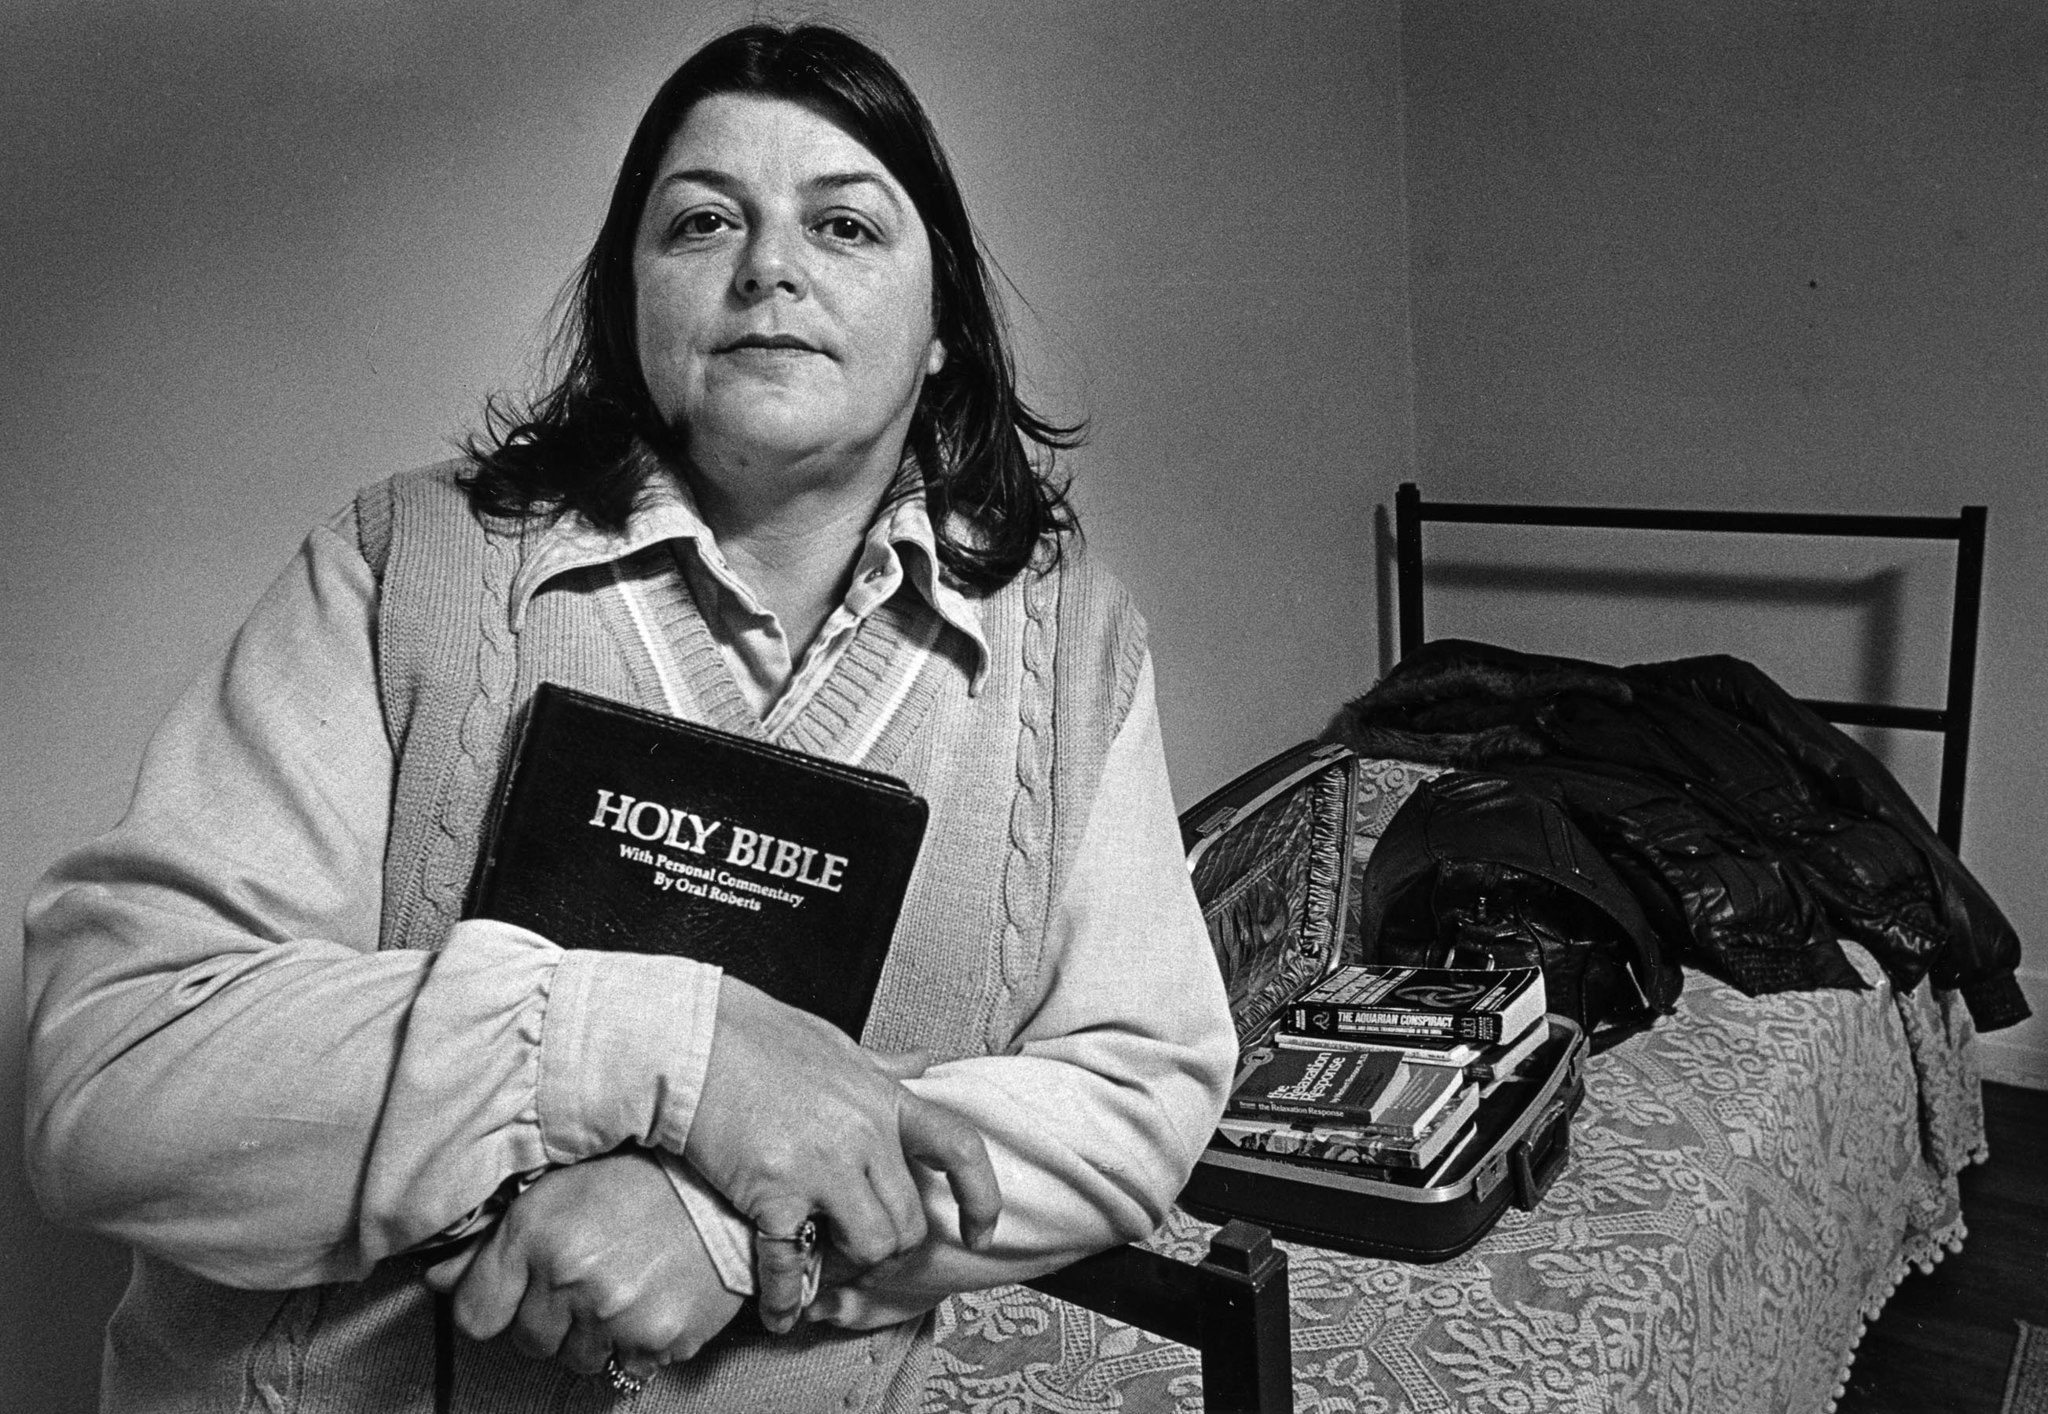 Jan. 12, 1987: Elizabeth Presley, 46, has been homeless for two years. She says that her religious f